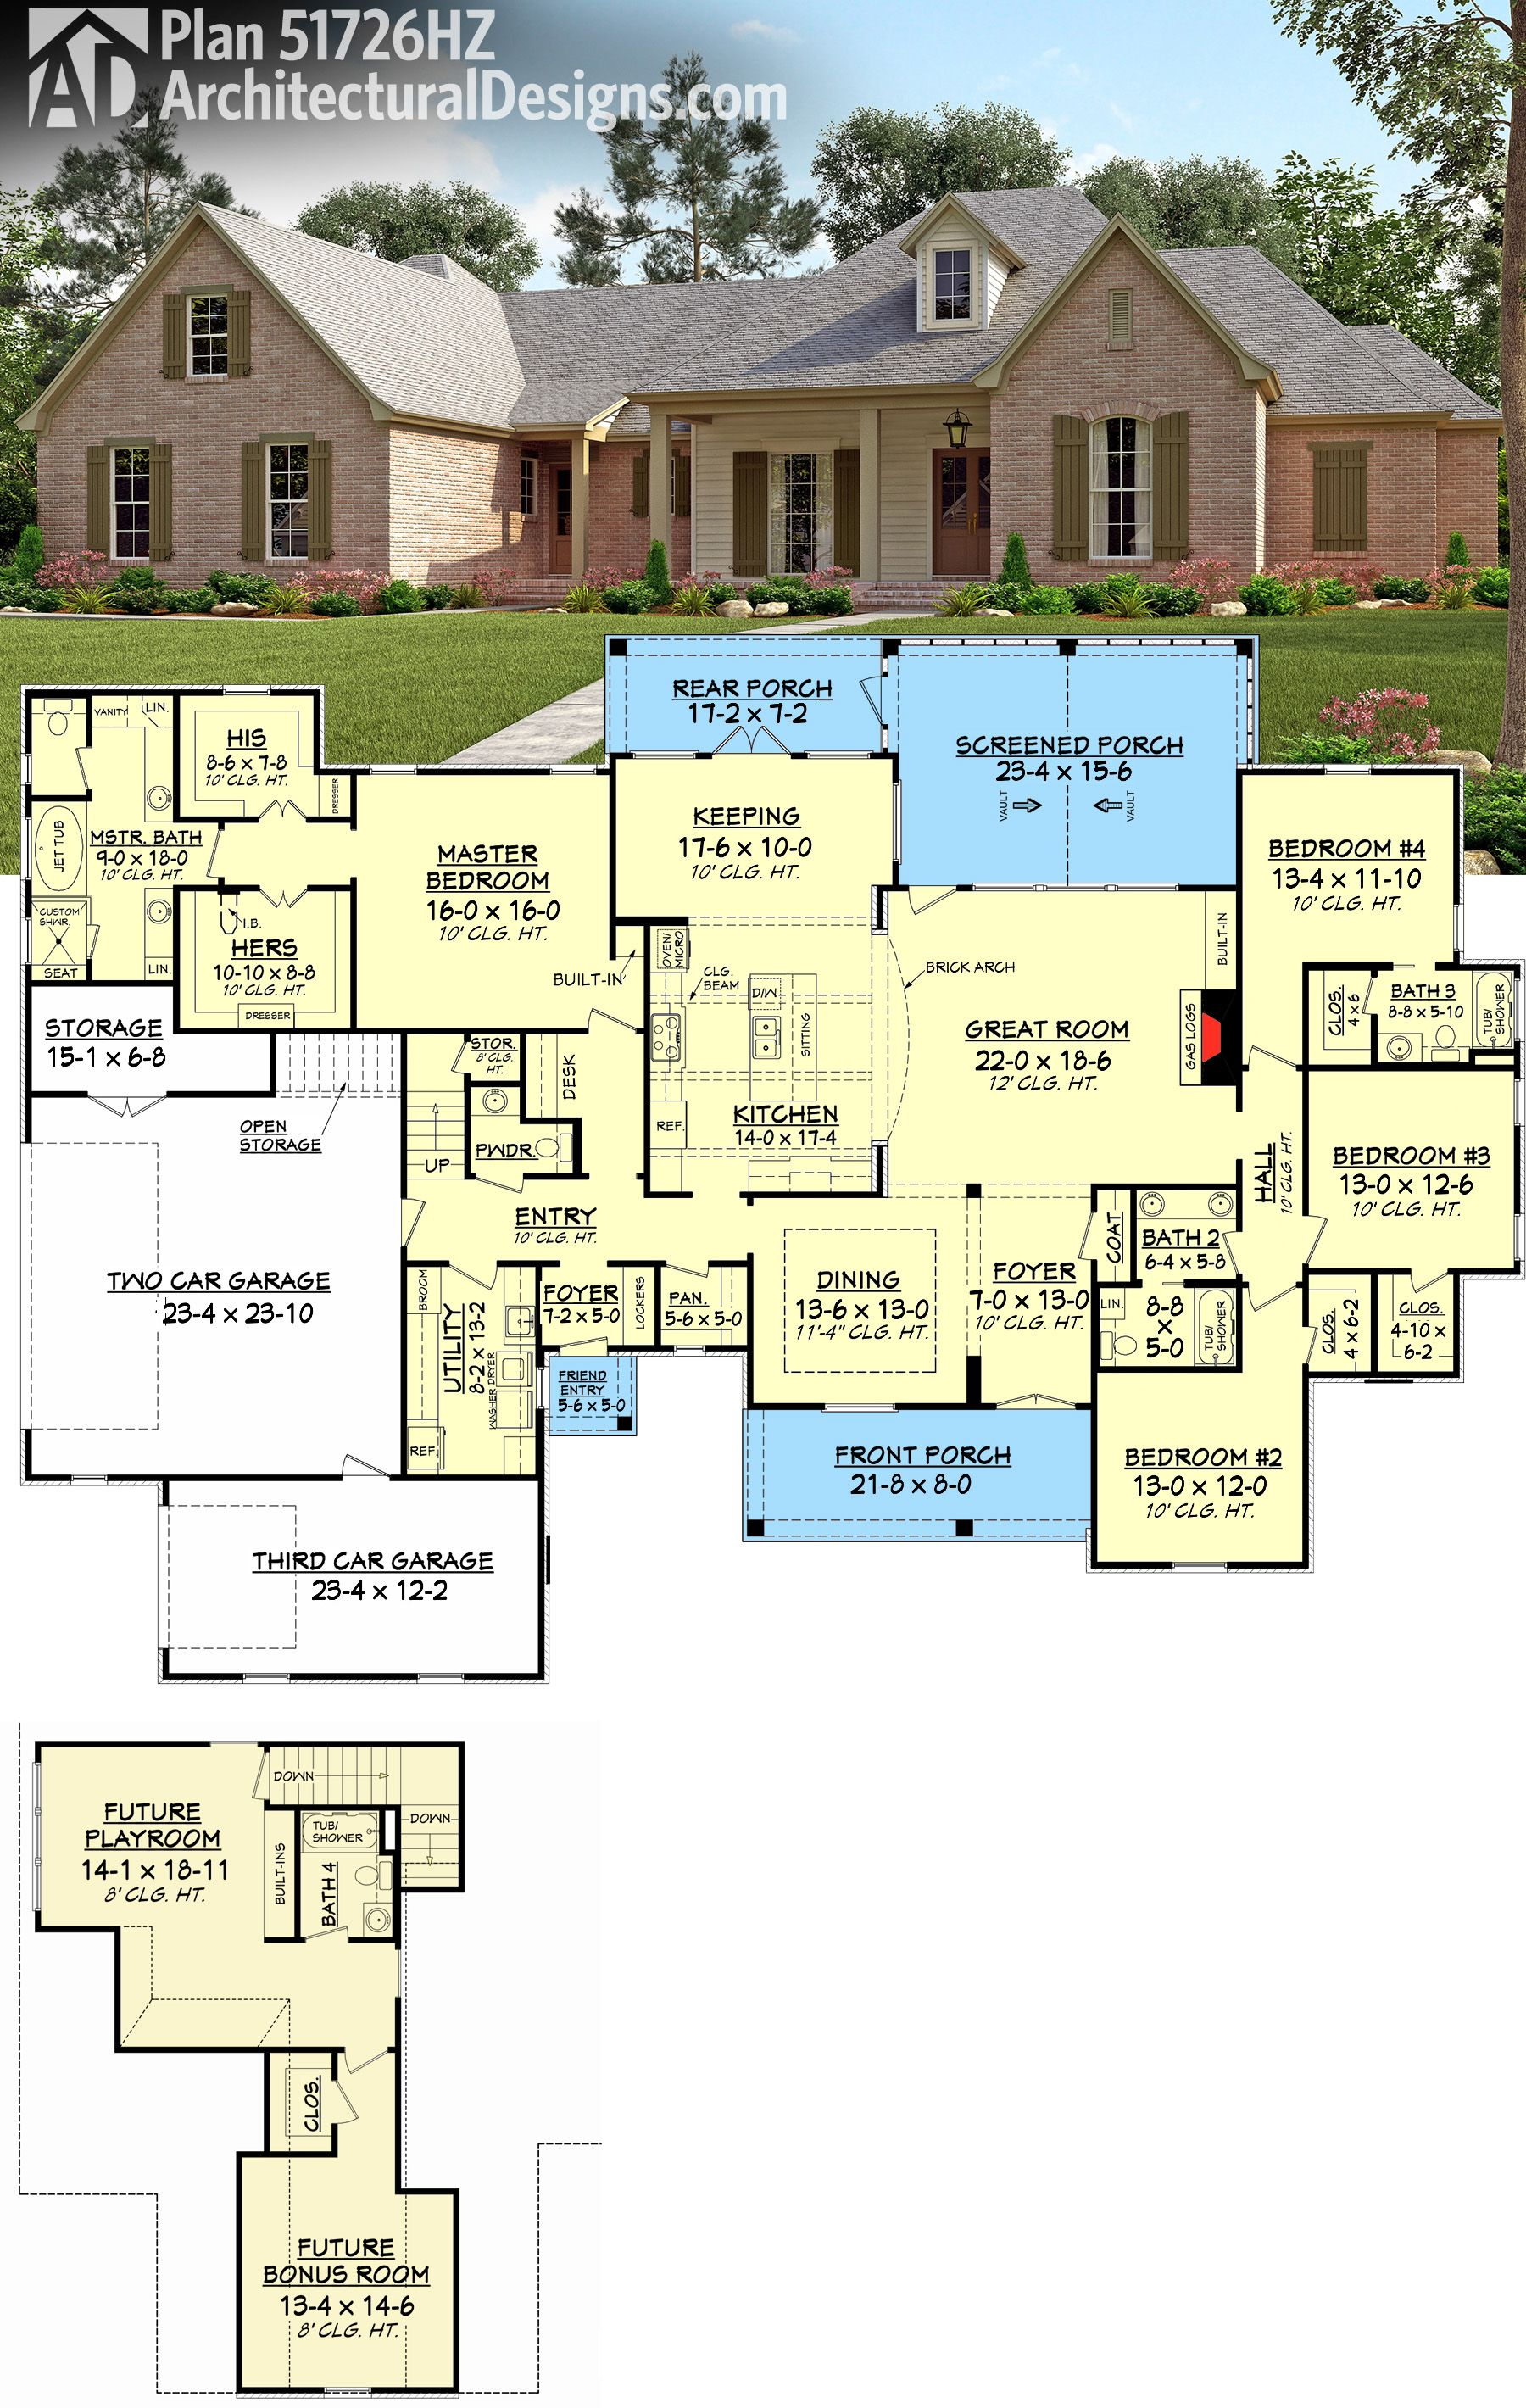 Architectural designs acadian house plan 51726hz has for House plans with bonus room upstairs